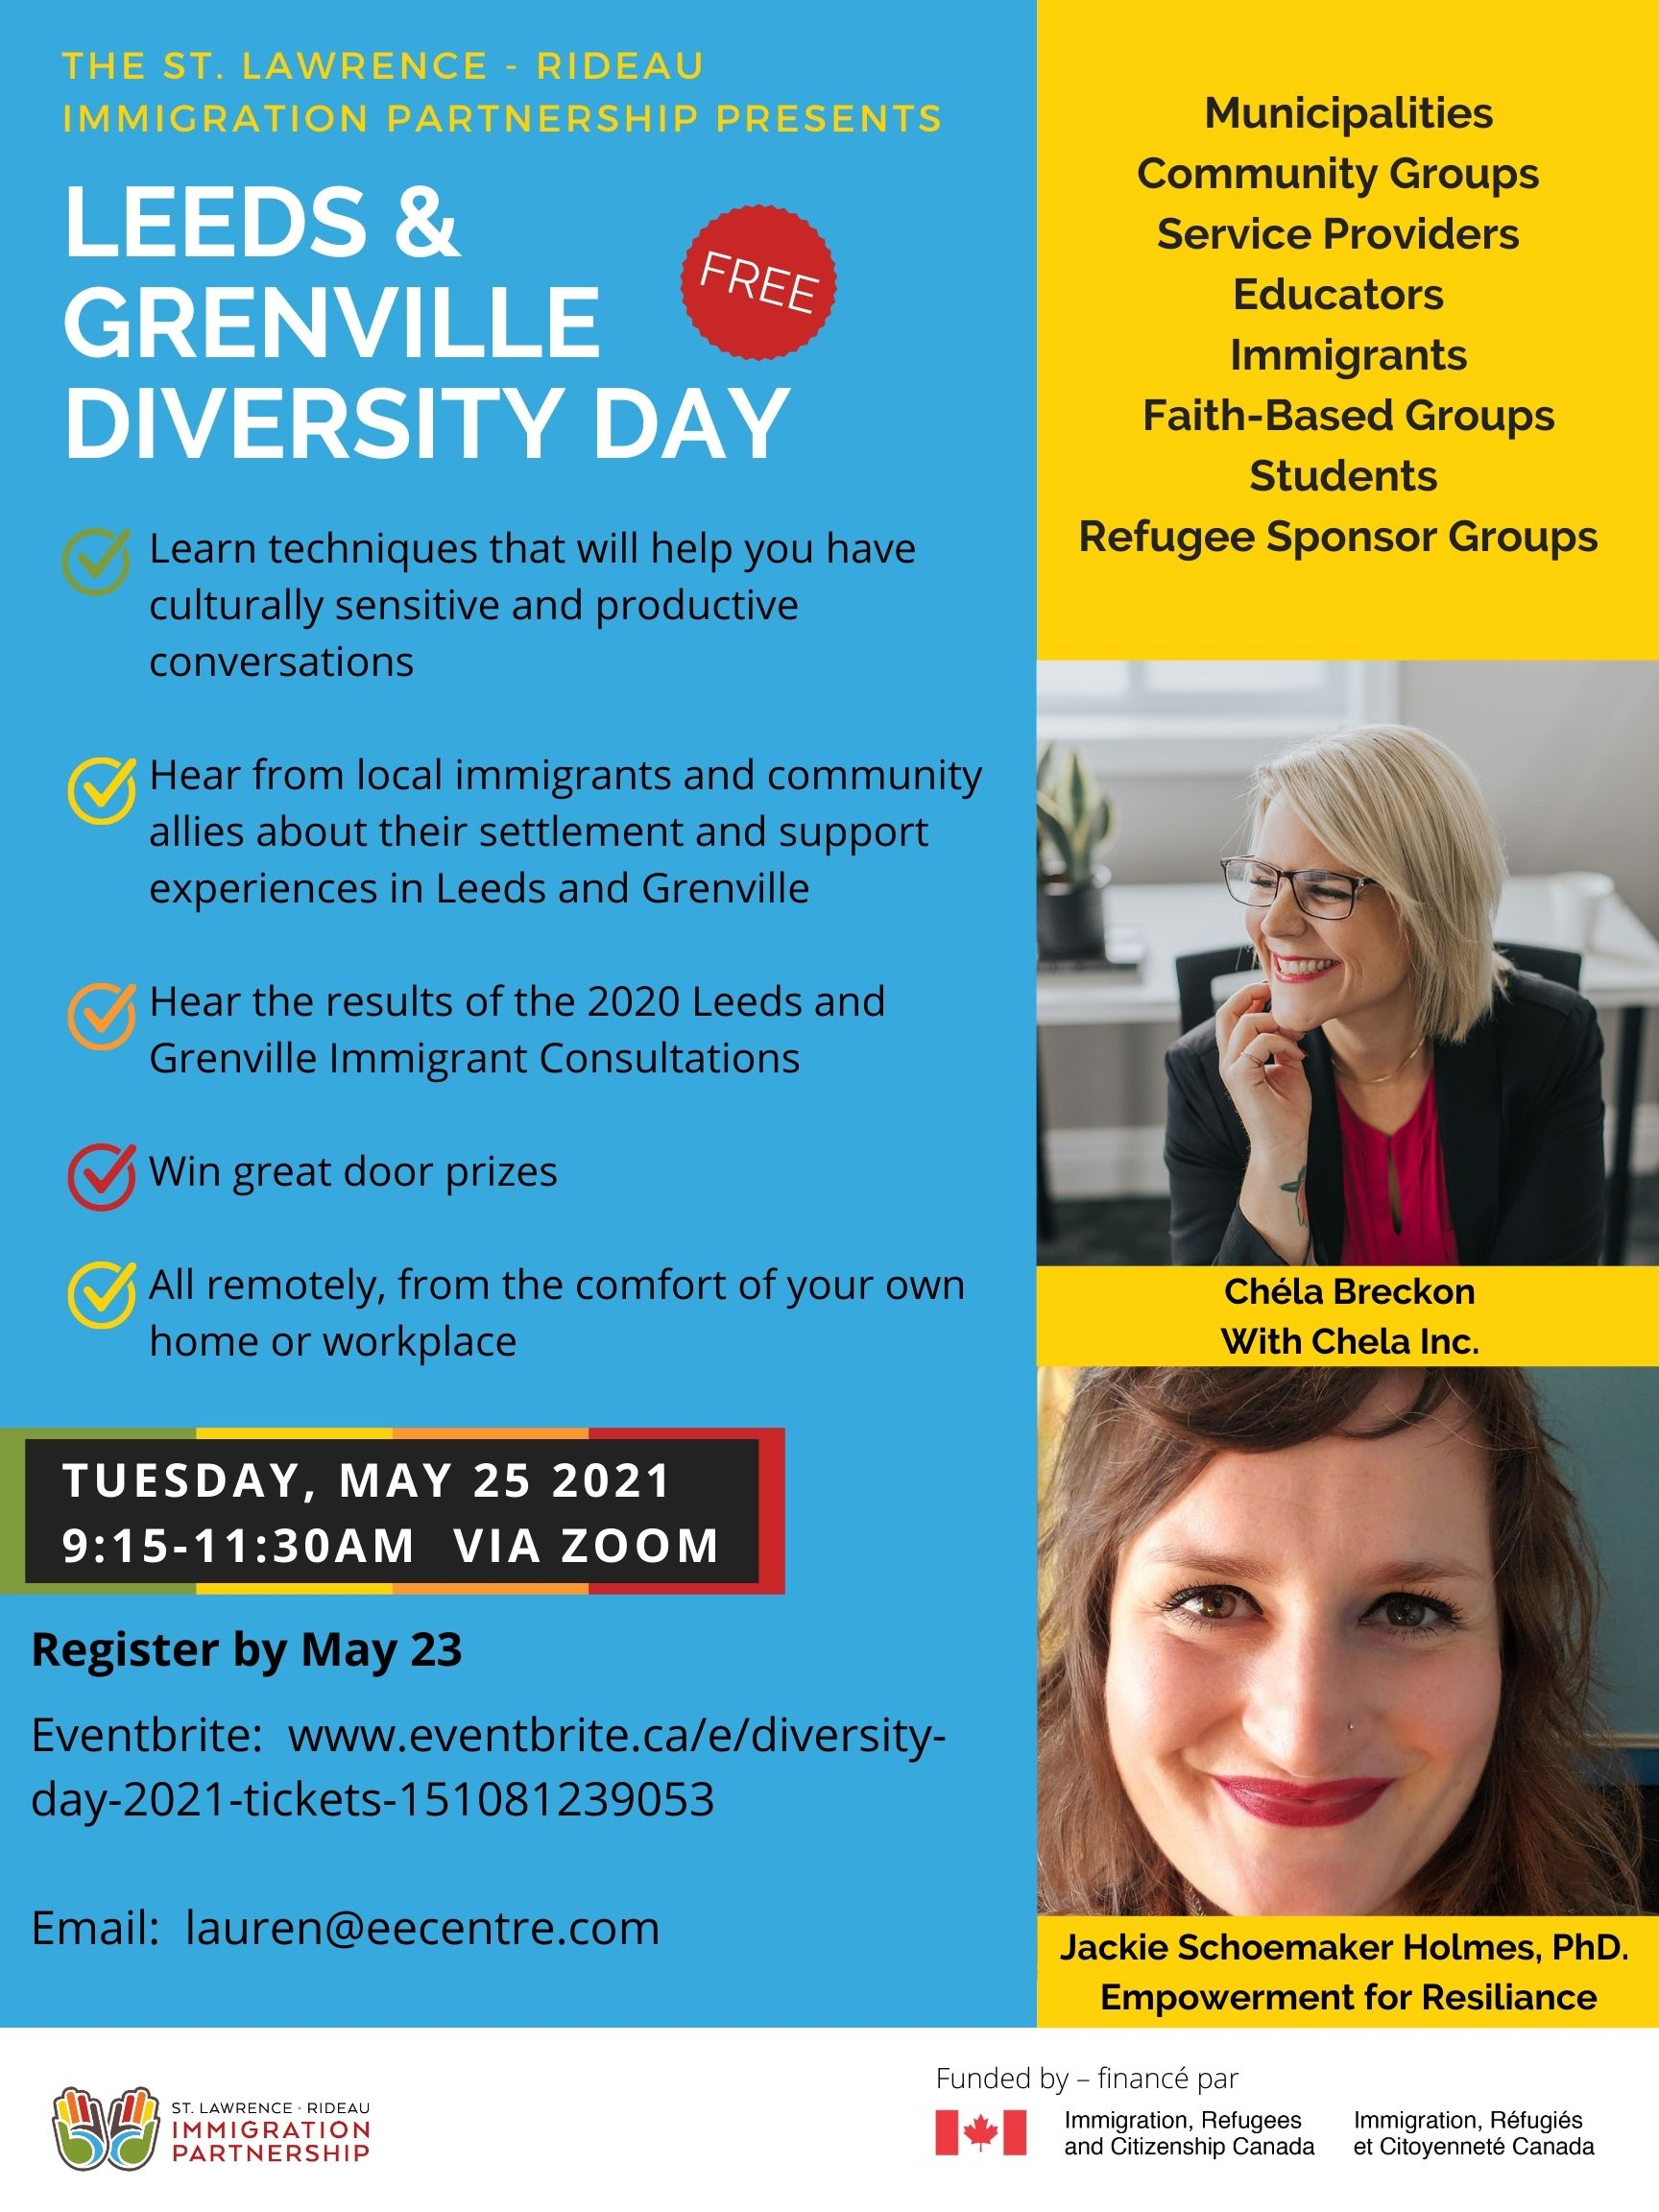 poster advertising diversity day